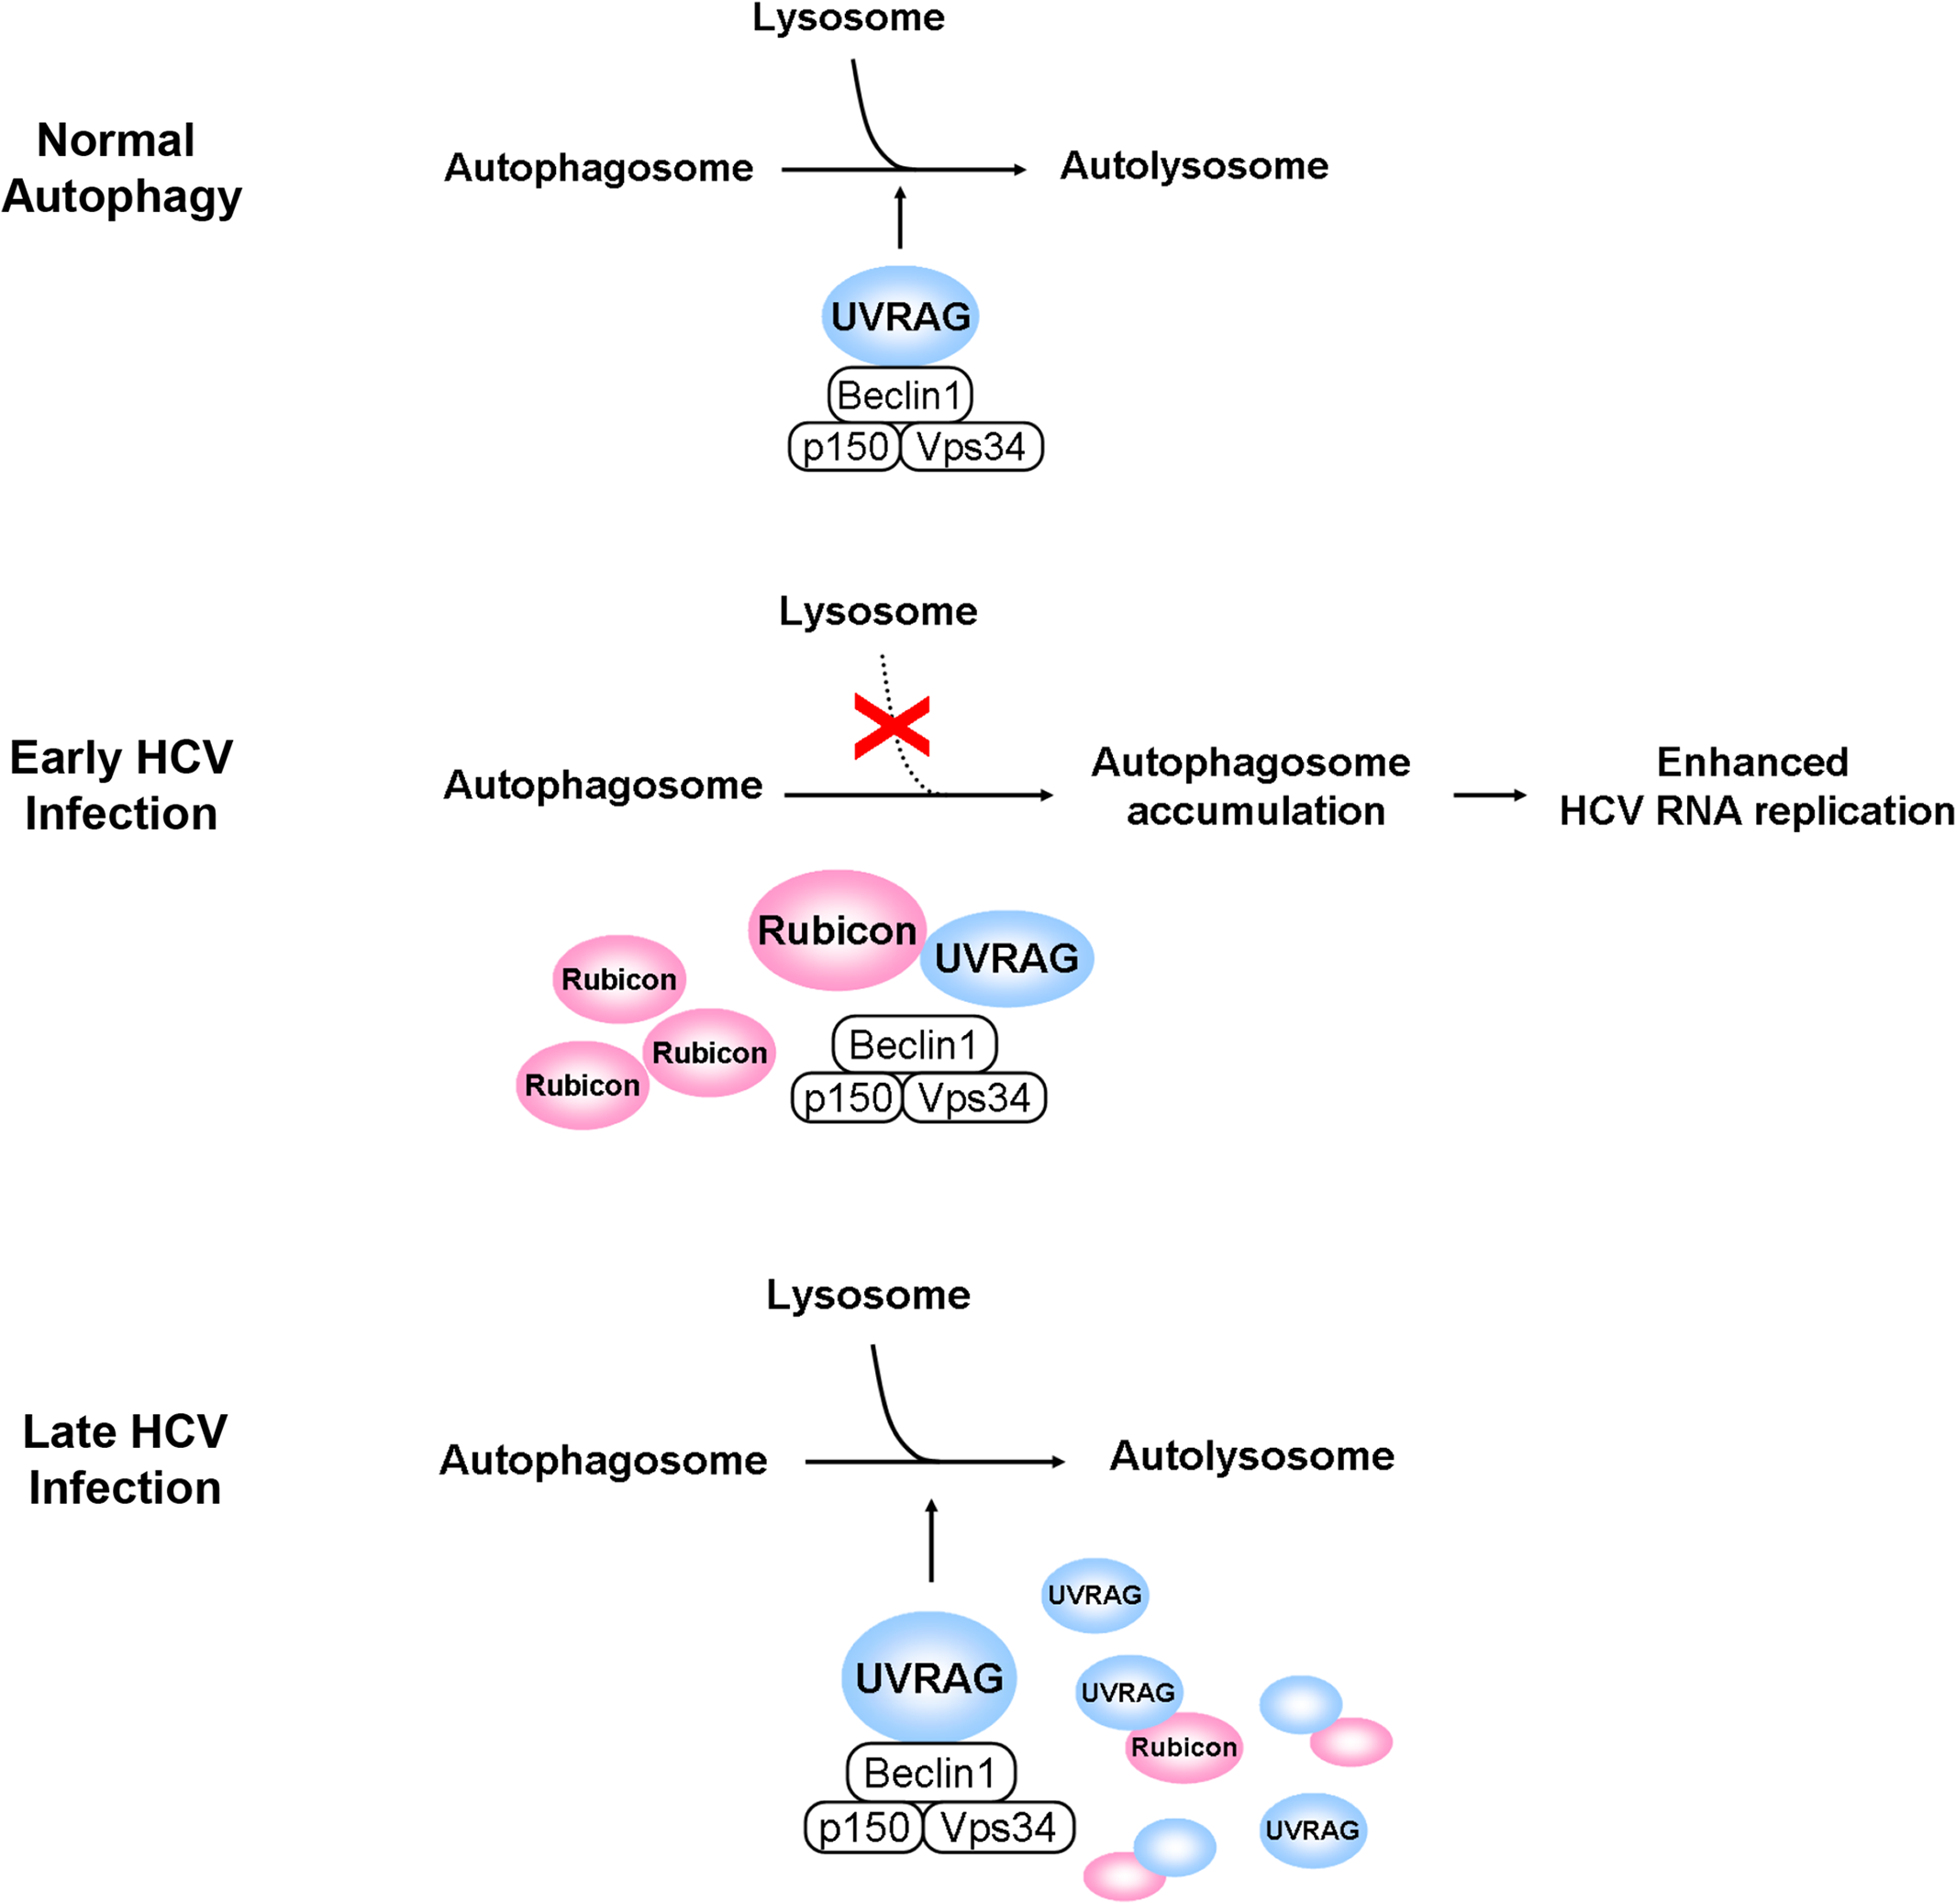 Model for the roles of Rubicon and UVRAG in the maturation of autophagosomes in HCV-infected cells.